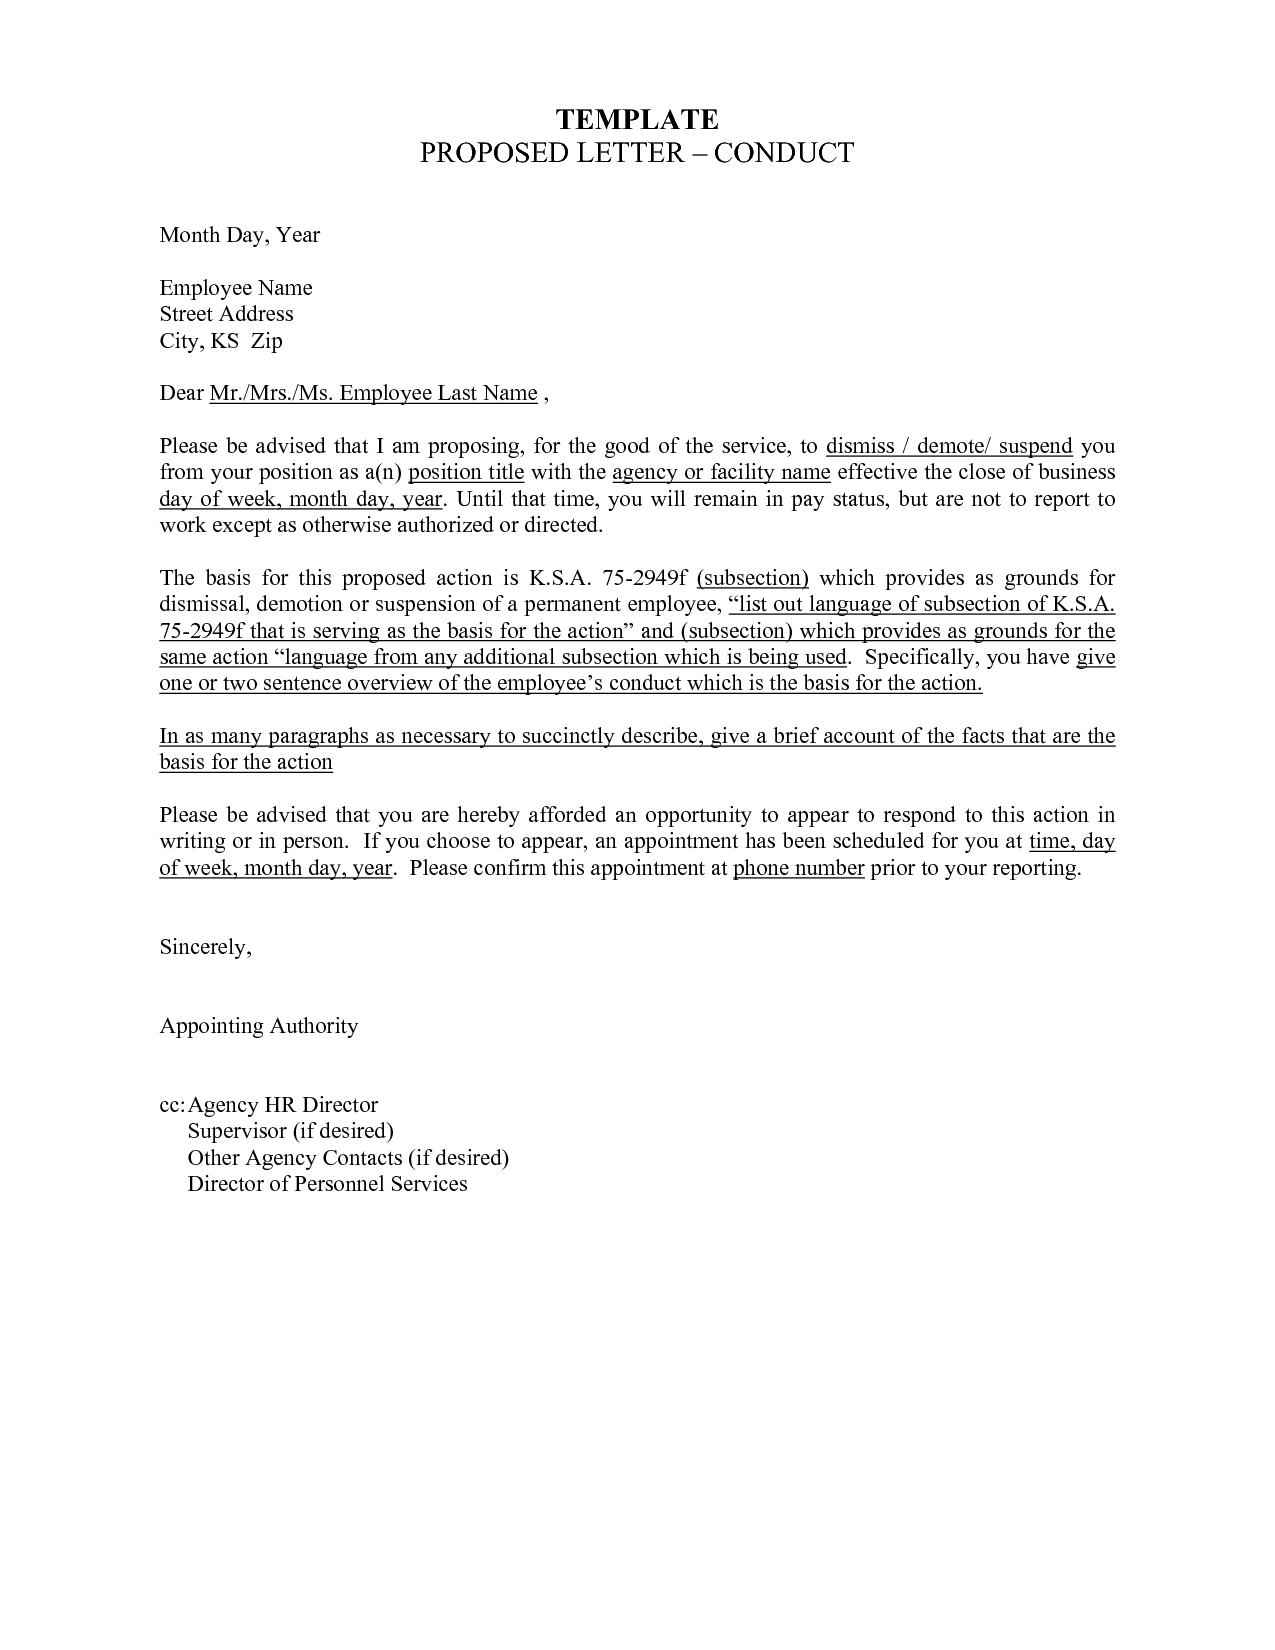 Demotion Letter Template Examples | Letter Template Collection